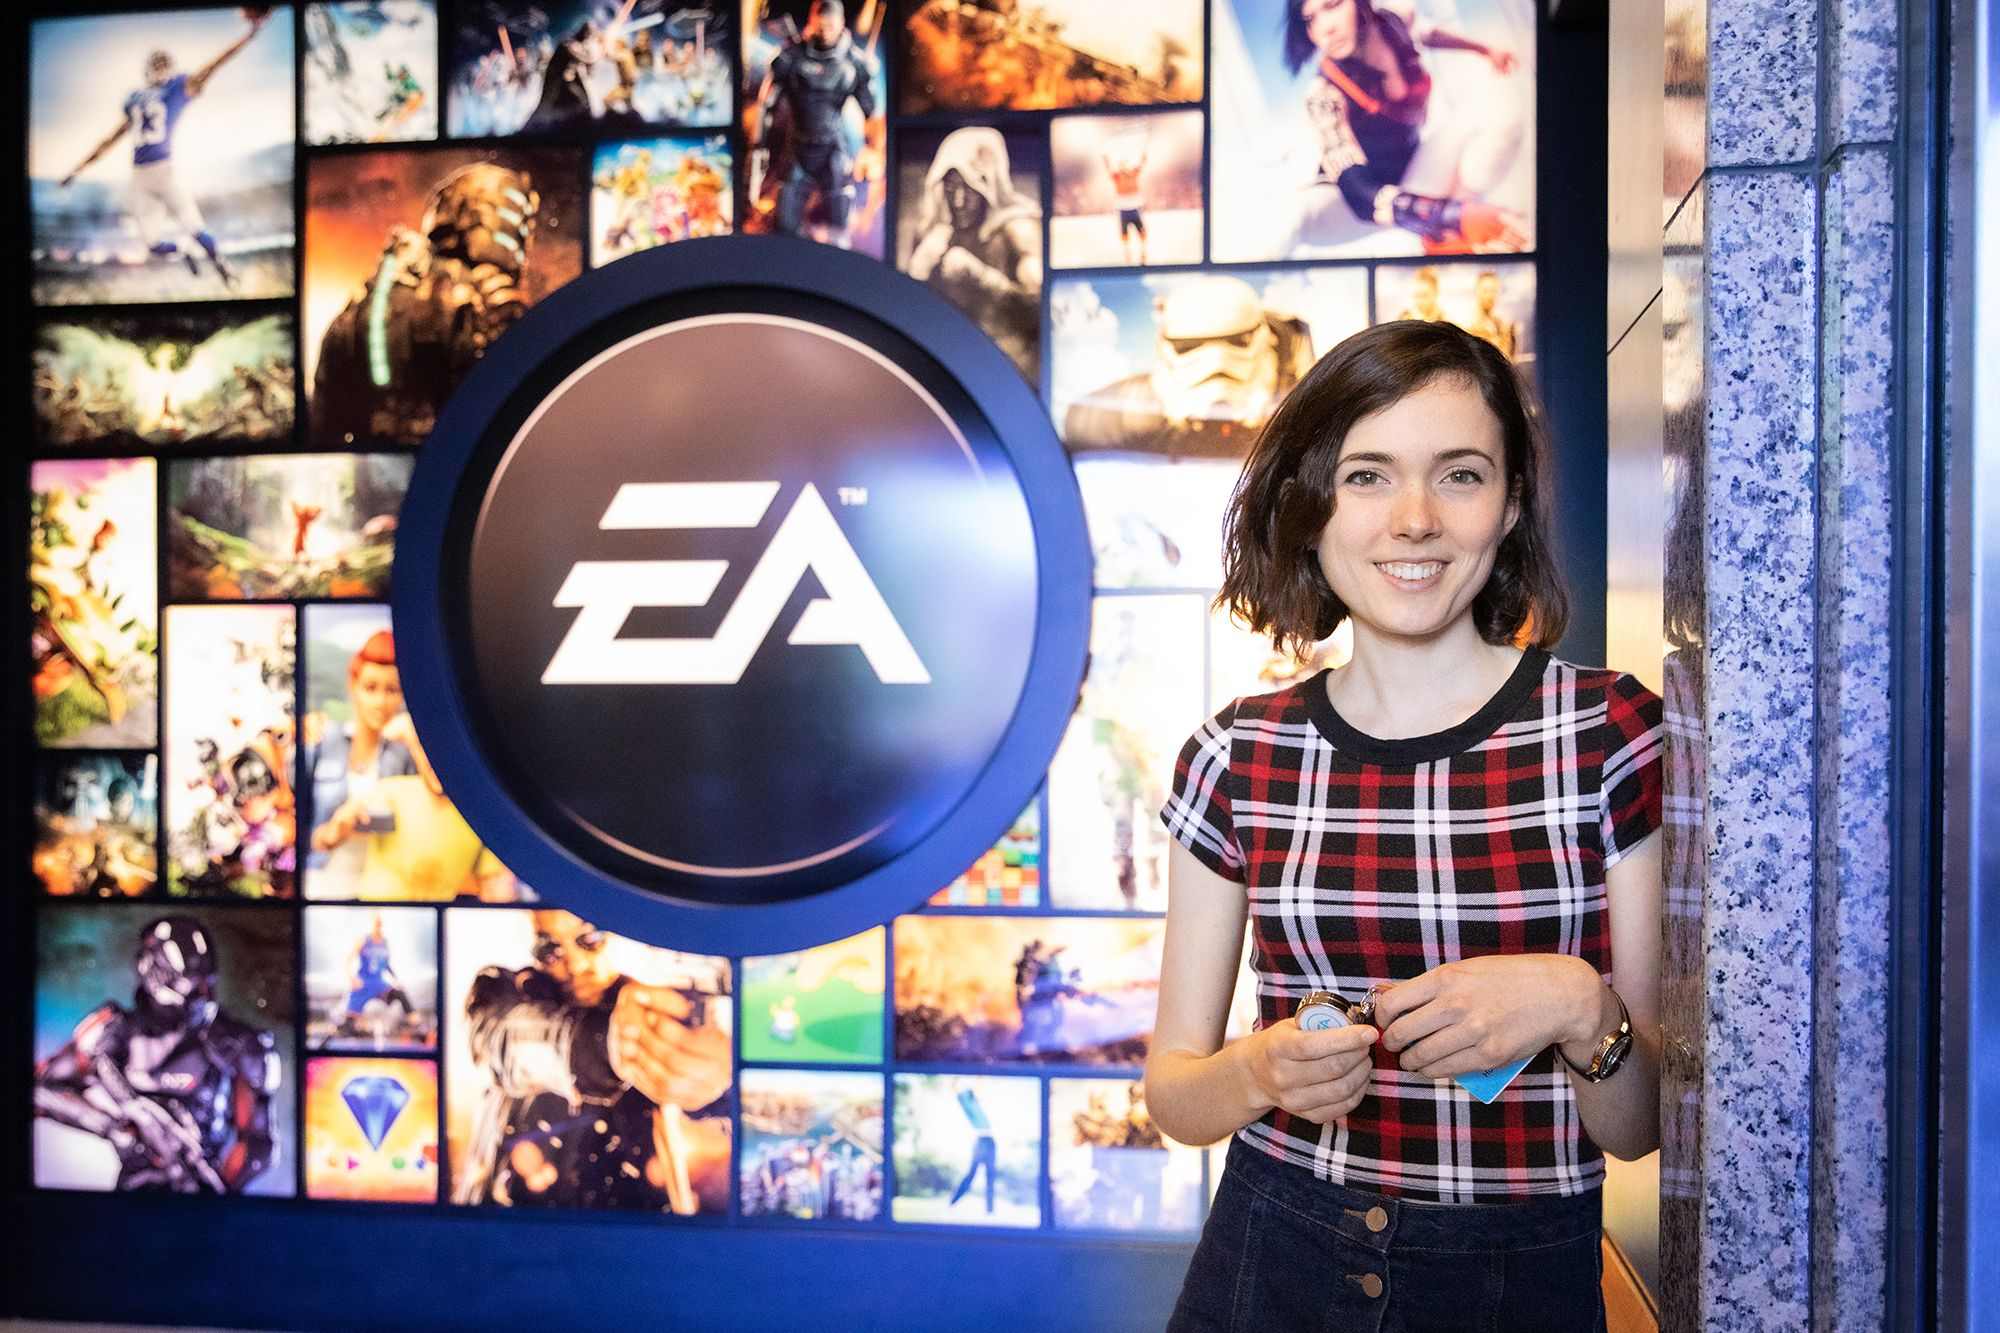 A Rollins grad poses in front of the EA logo at the company's Orlando headquarters.